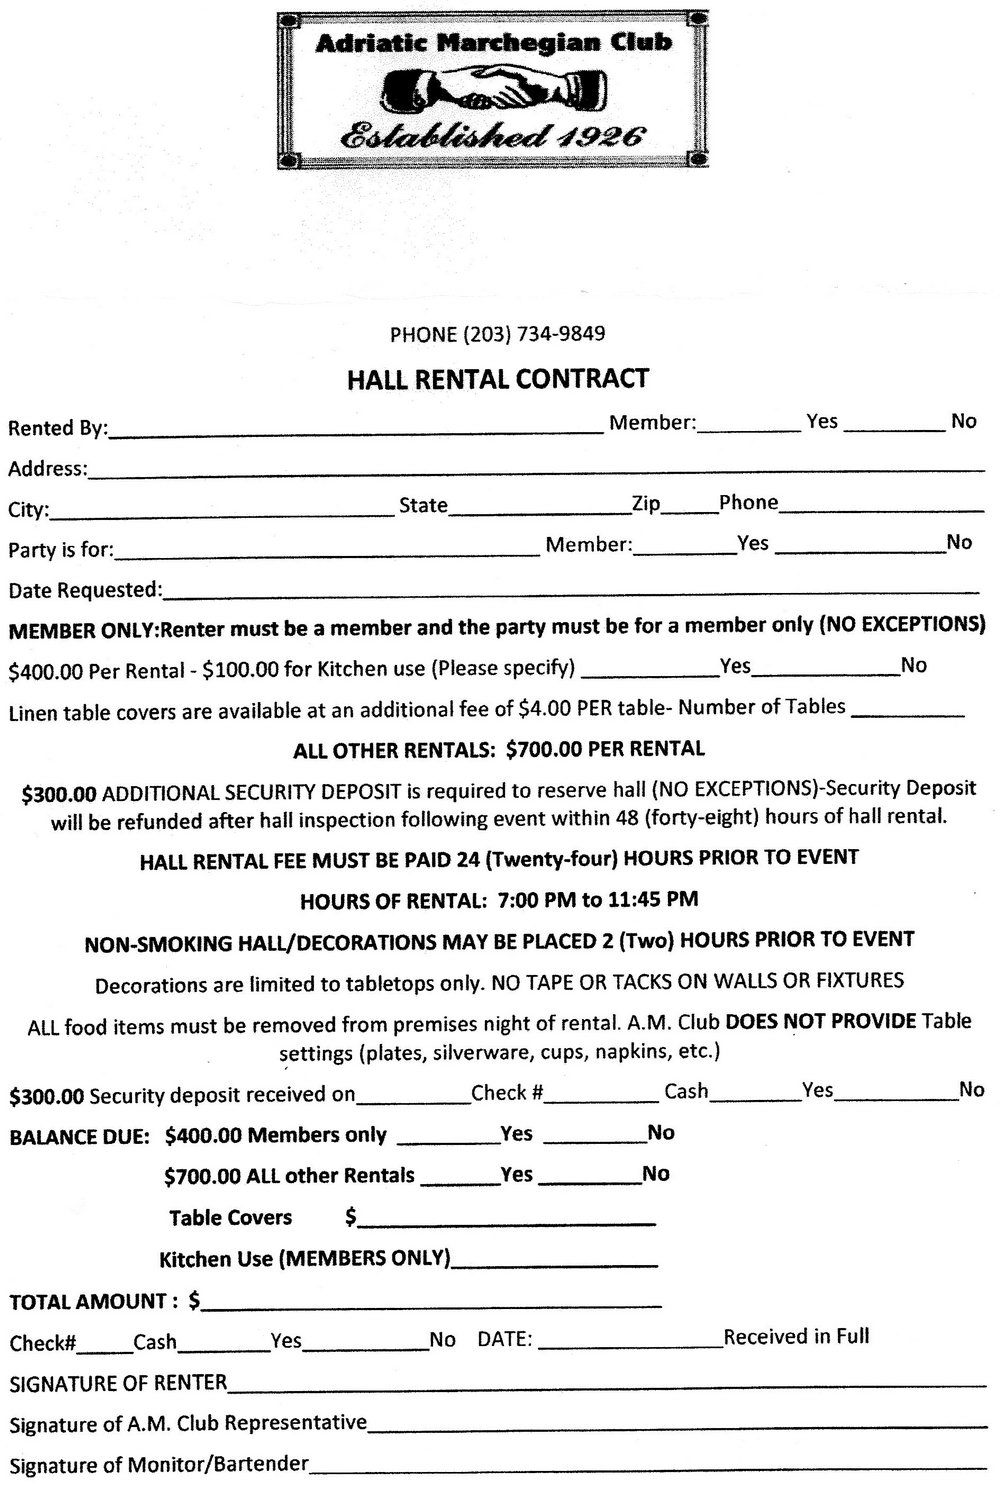 Banquet Hall Contract Template